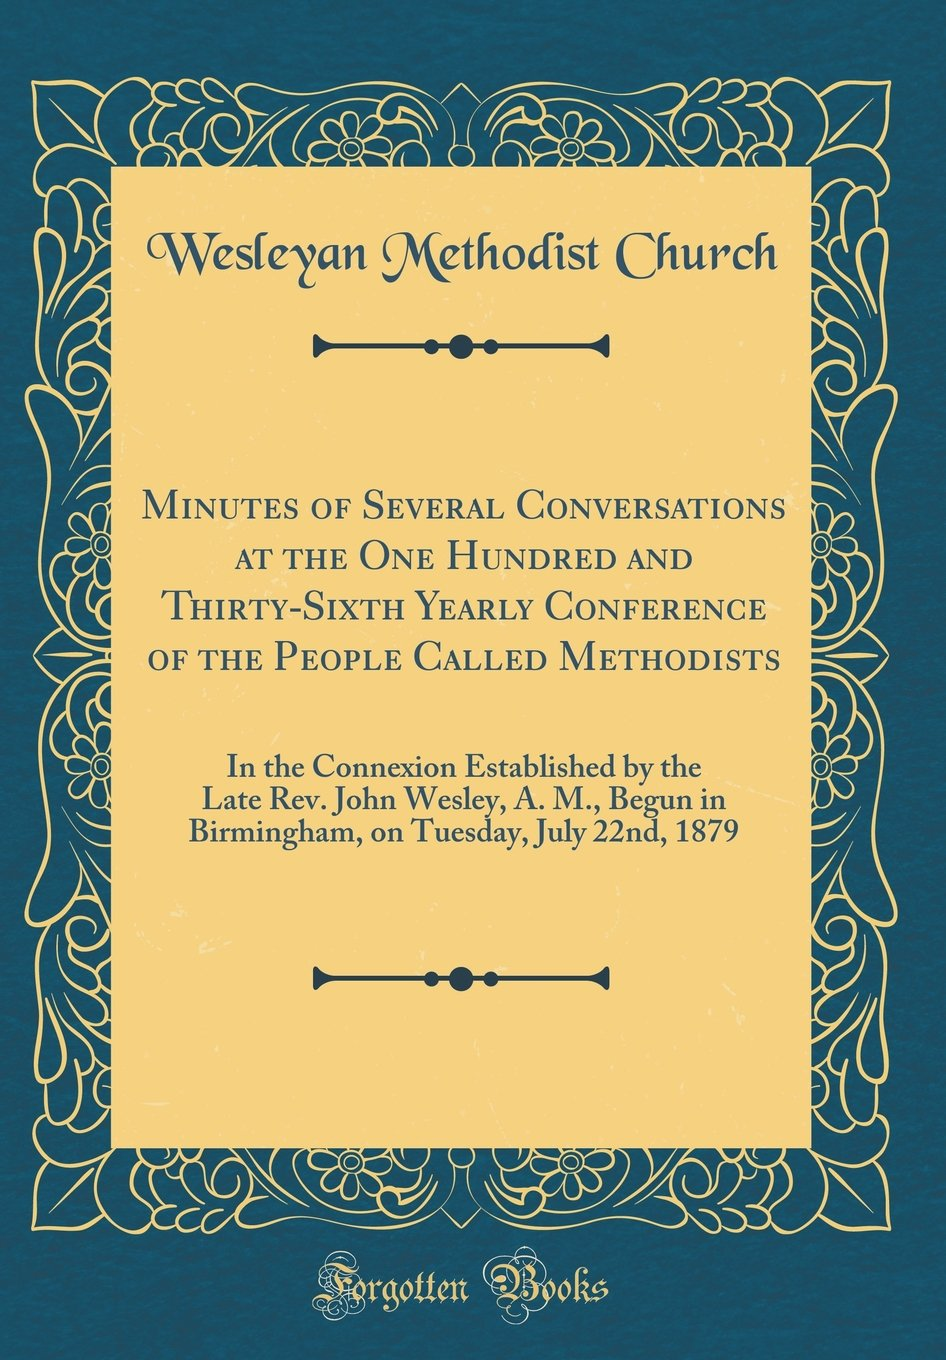 Minutes of Several Conversations at the One Hundred and Thirty-Sixth Yearly Conference of the People Called Methodists: In the Connexion Established ... on Tuesday, July 22nd, 1879 (Classic Reprint) pdf epub